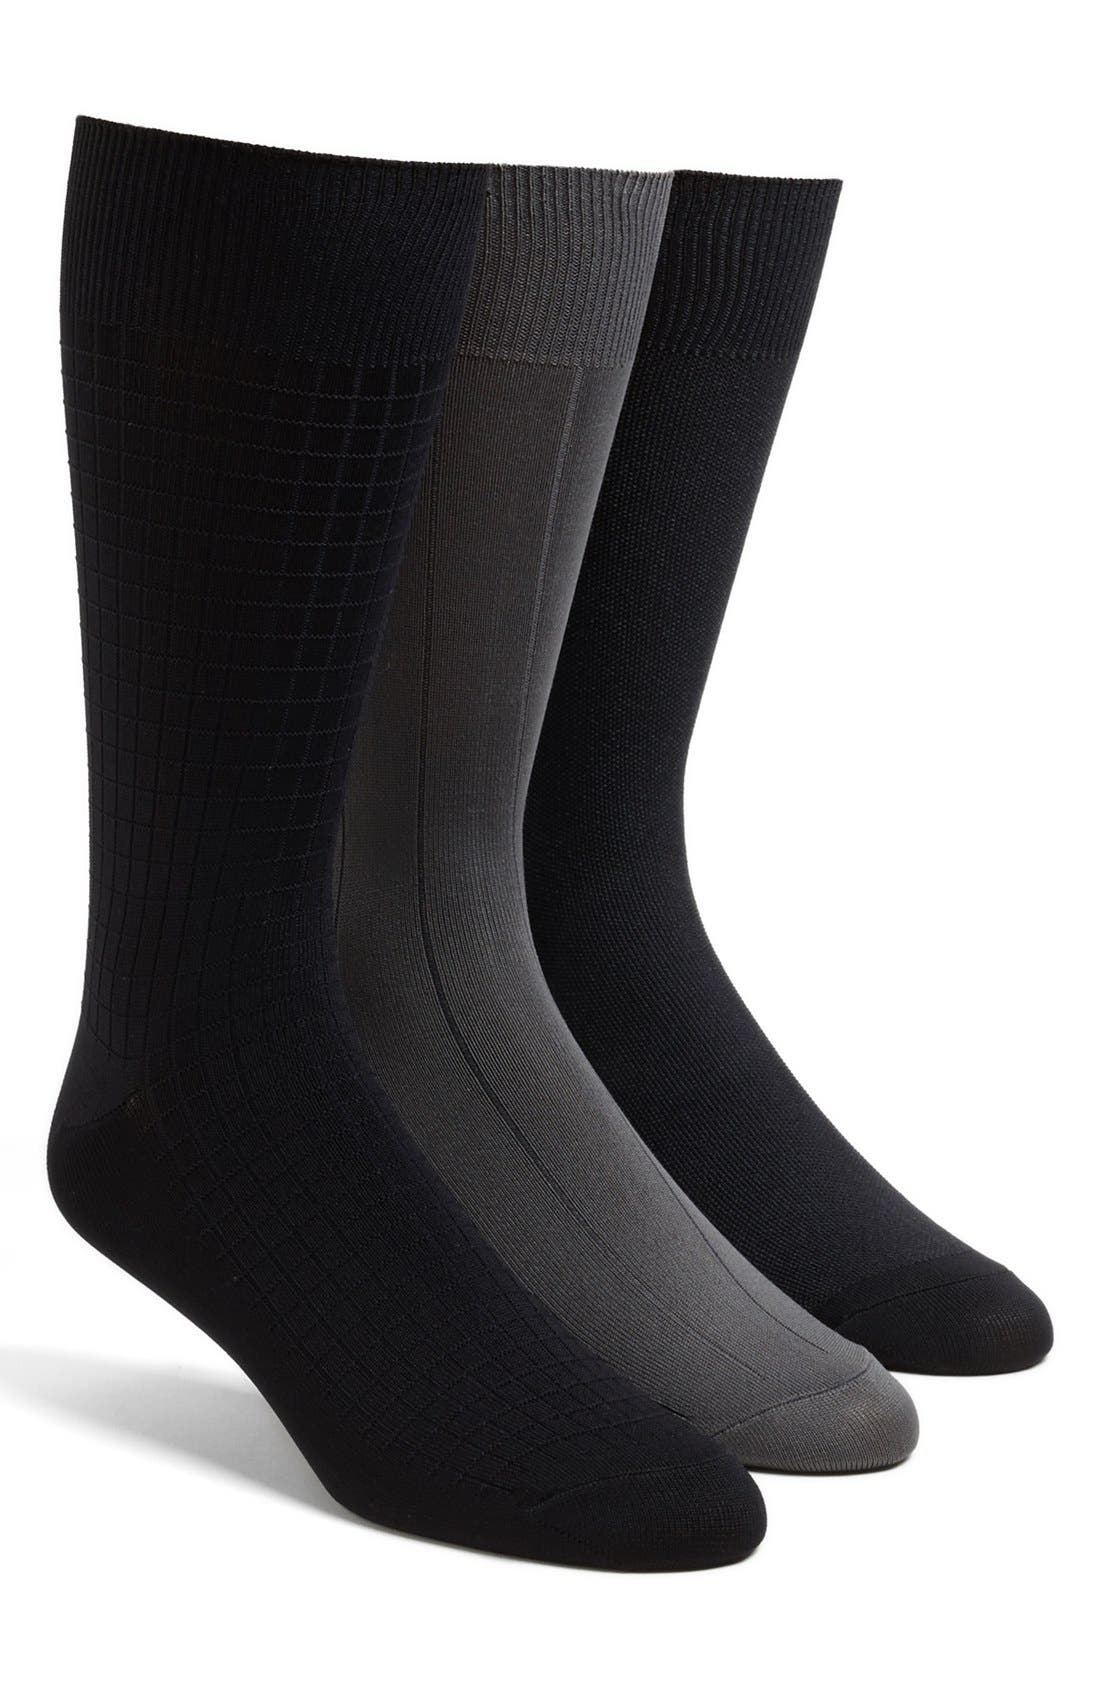 Alternate Image 1 Selected - Calvin Klein 3-Pack Microfiber Socks